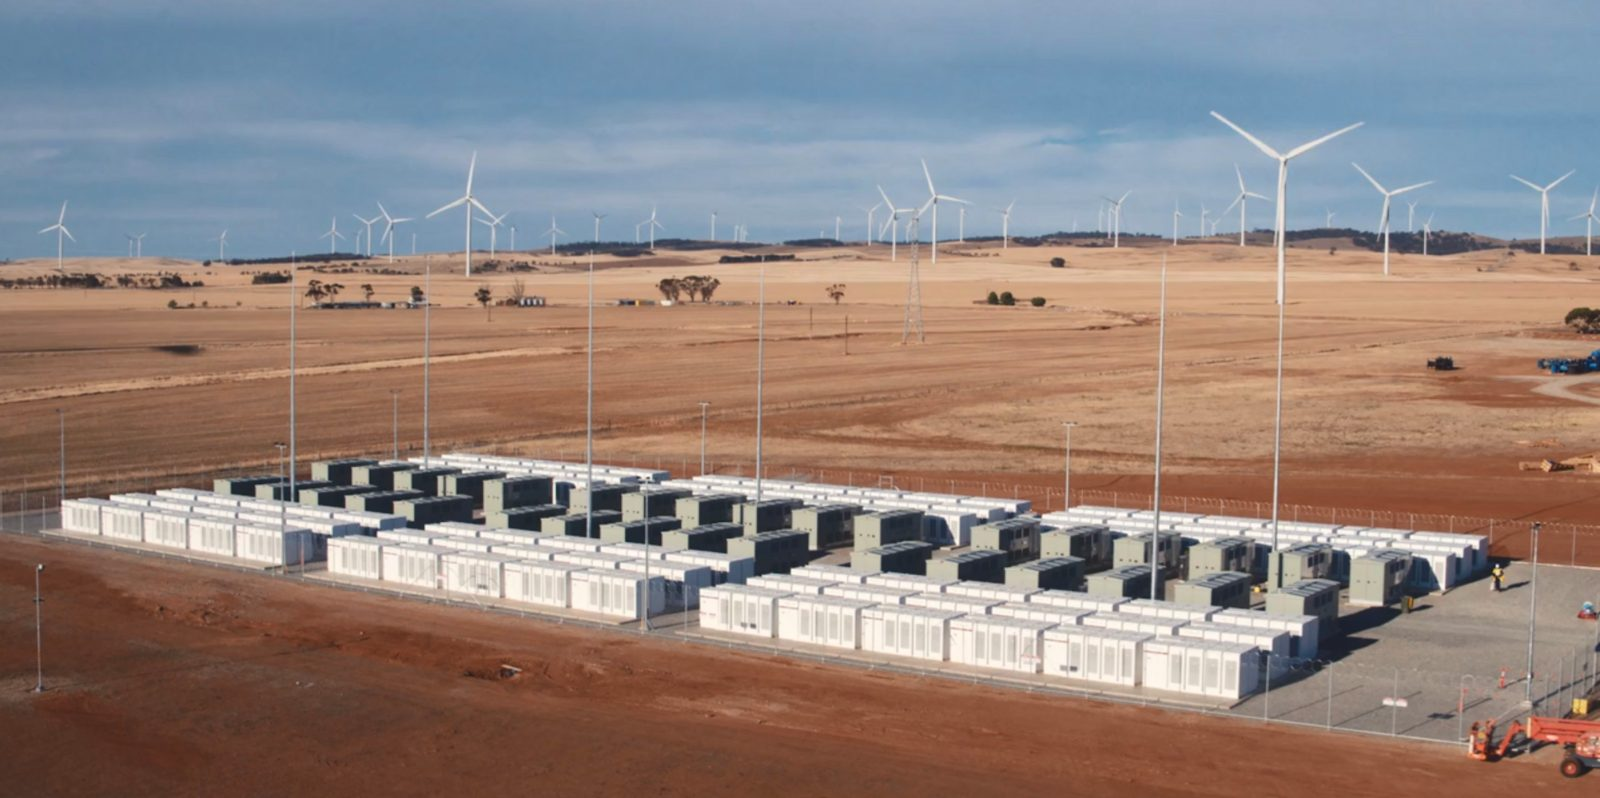 Tesla teases a potential giant new record-breaking 1 GWh energy